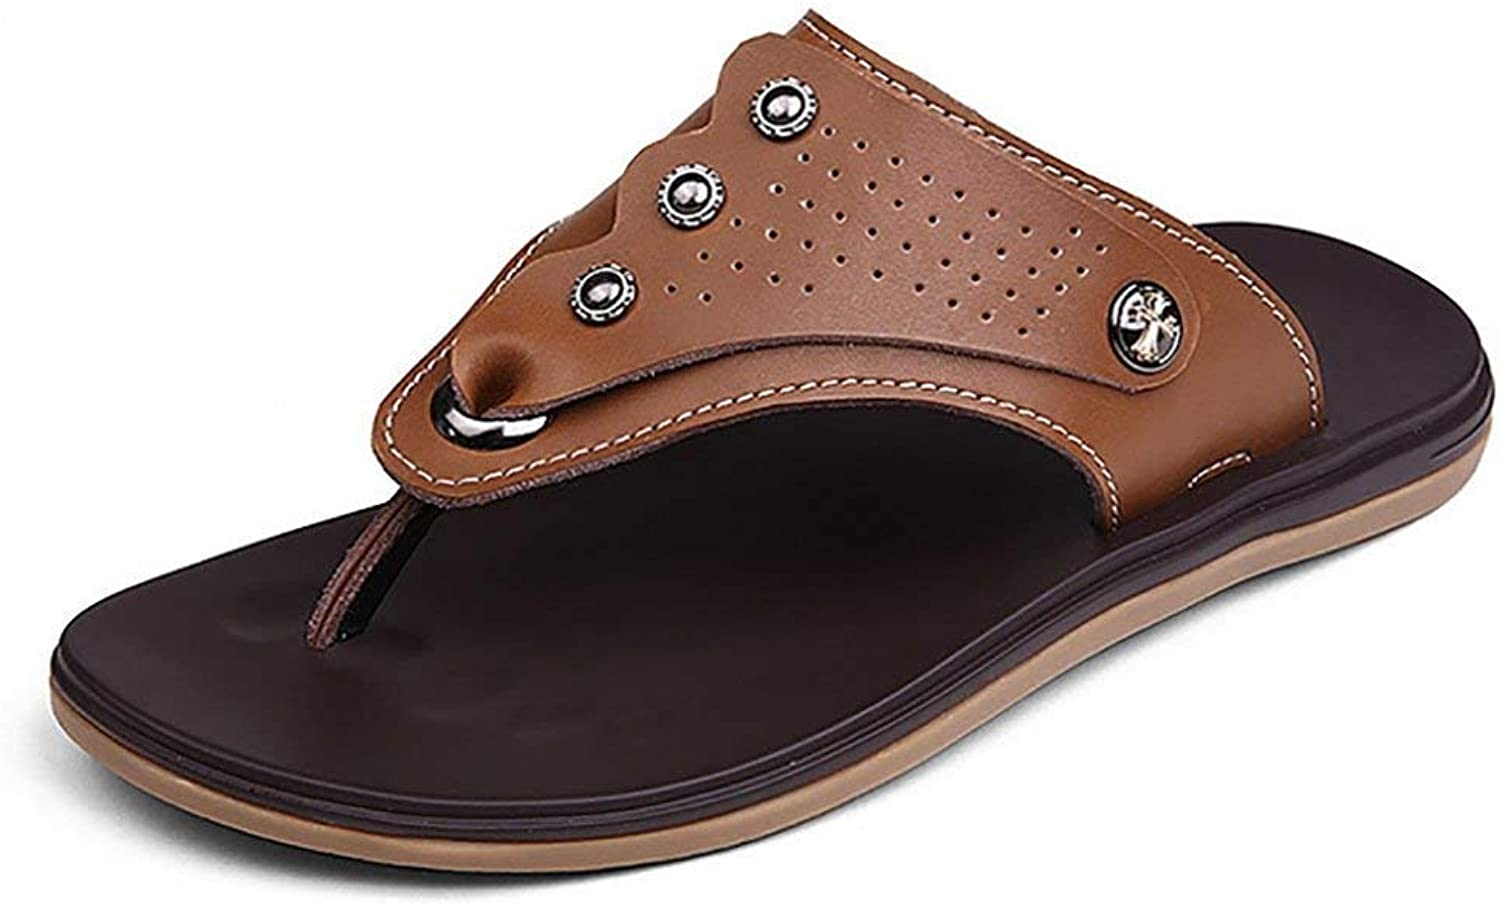 Yingsssq Fashion Genuine Leather Non-slip Flip Flops Slippers Men's Sandals for Everyday Life Beach (color   Brown, Size   41)